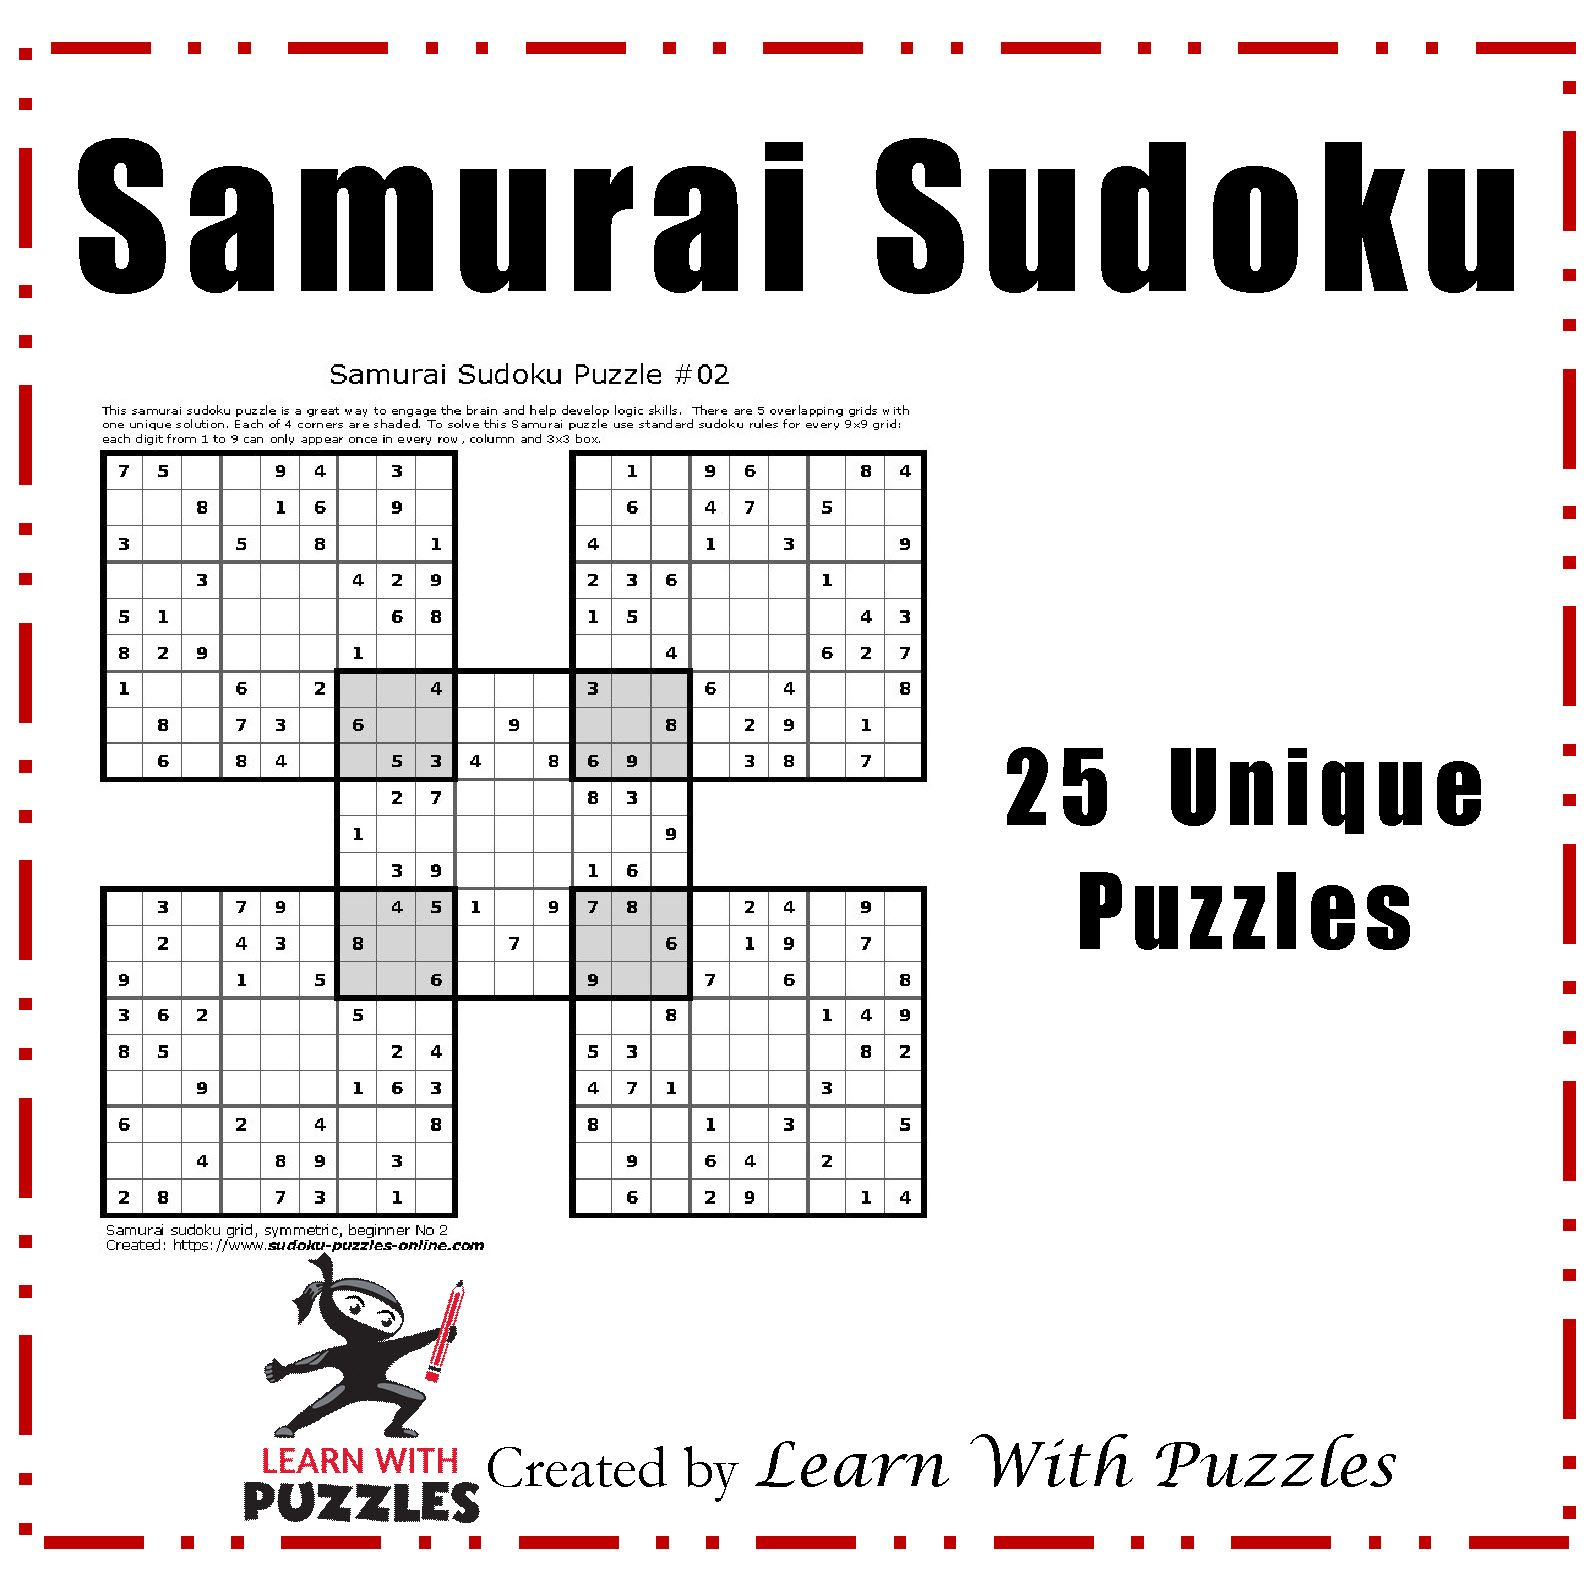 Samurai Sudoku Puzzles - 25 Unique Sudoku Puzzle Collection